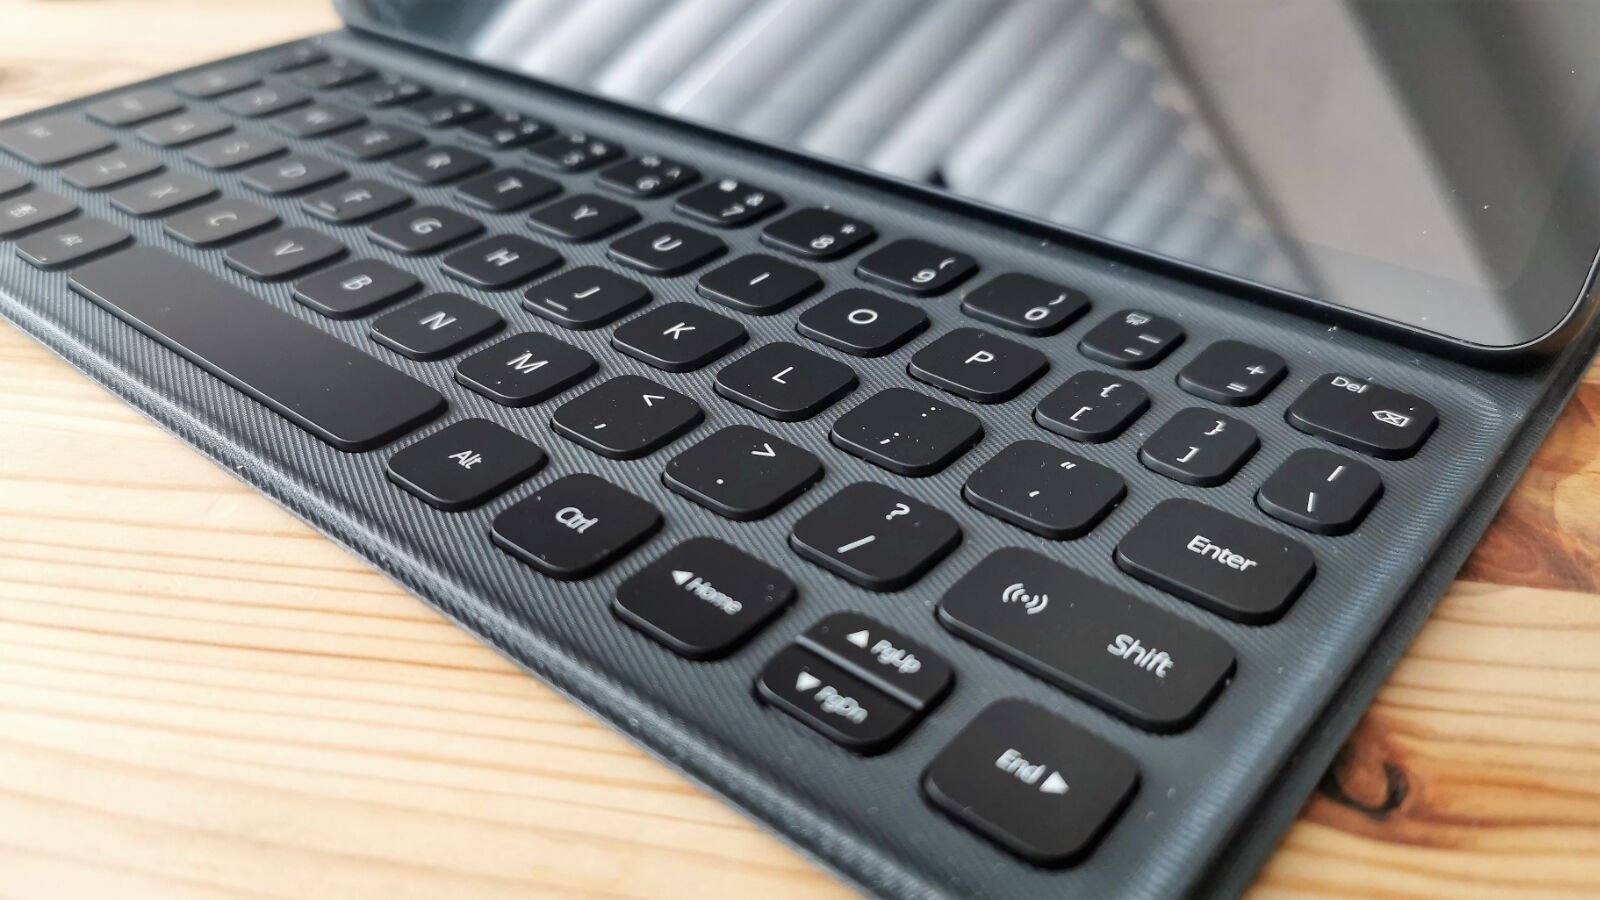 The detachable keyboard comes bundled with the MatePad 11 in most regions